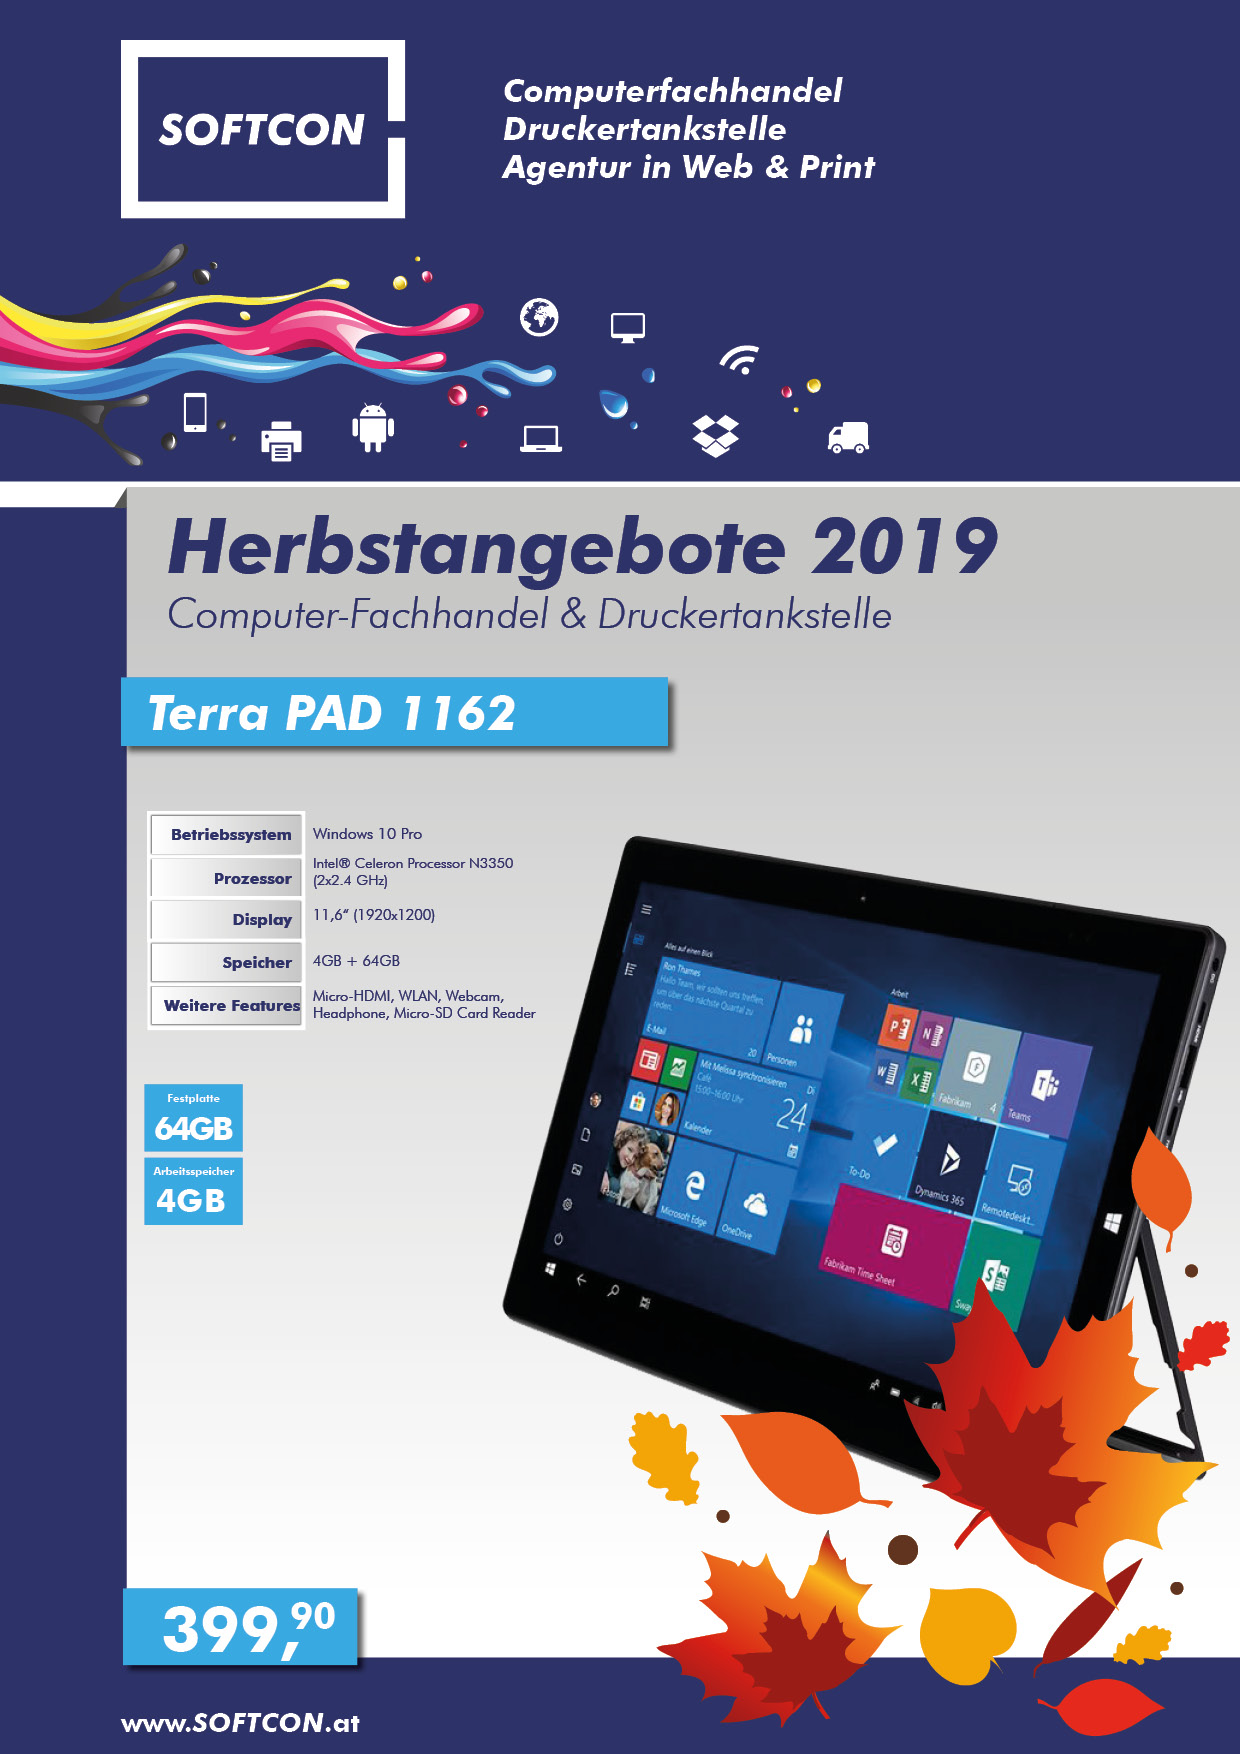 SOFTCON Herbstangebote 2019